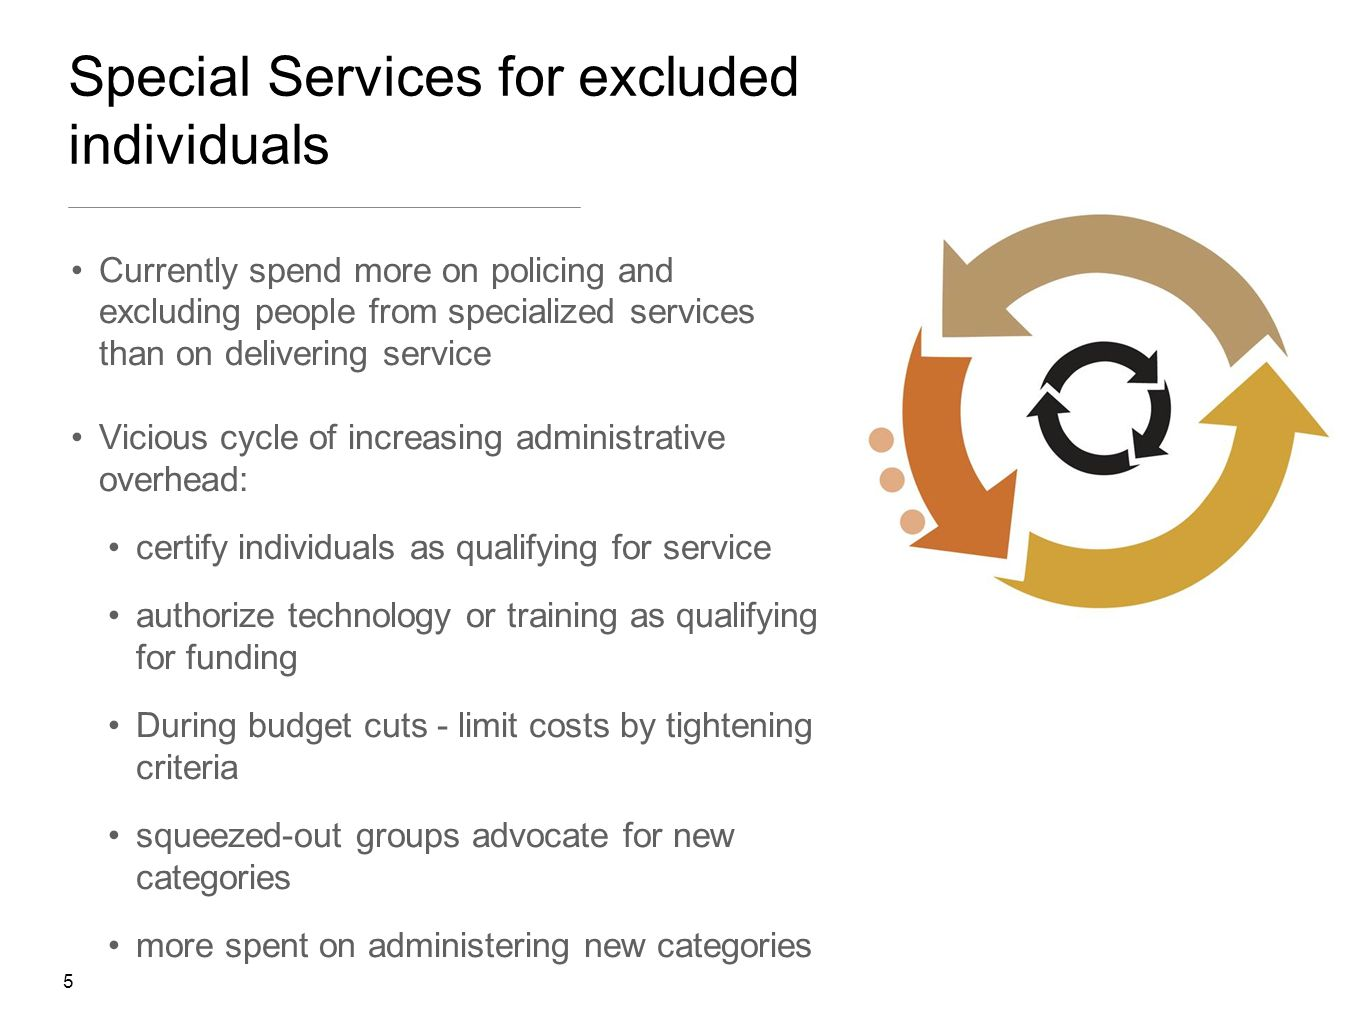 5 Special Services for excluded individuals Currently spend more on policing and excluding people from specialized services than on delivering service Vicious cycle of increasing administrative overhead: certify individuals as qualifying for service authorize technology or training as qualifying for funding During budget cuts - limit costs by tightening criteria squeezed-out groups advocate for new categories more spent on administering new categories